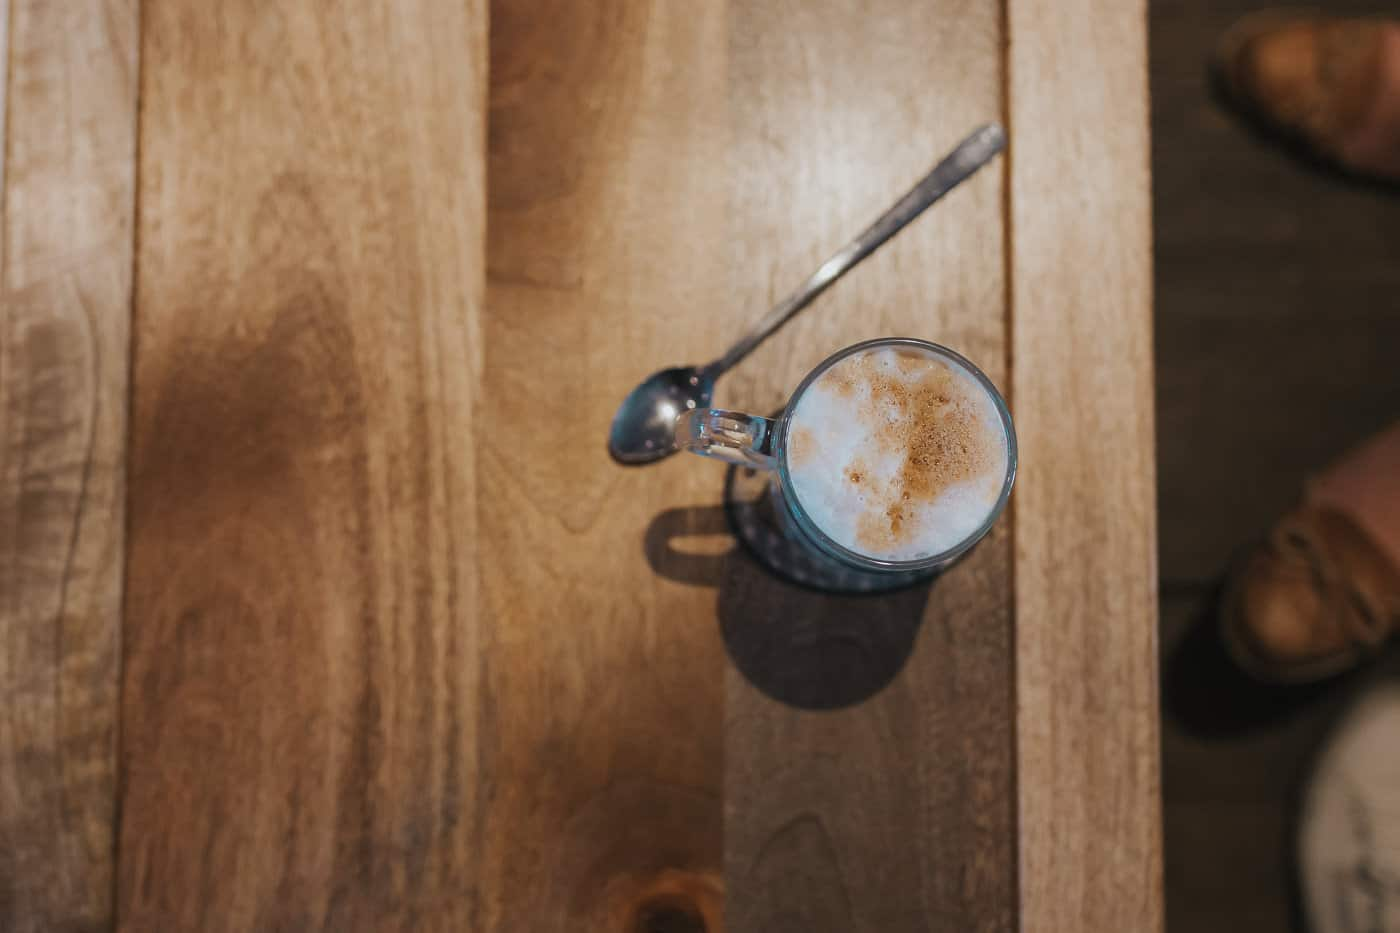 Top down view of a latte and a spoon on a wooden table